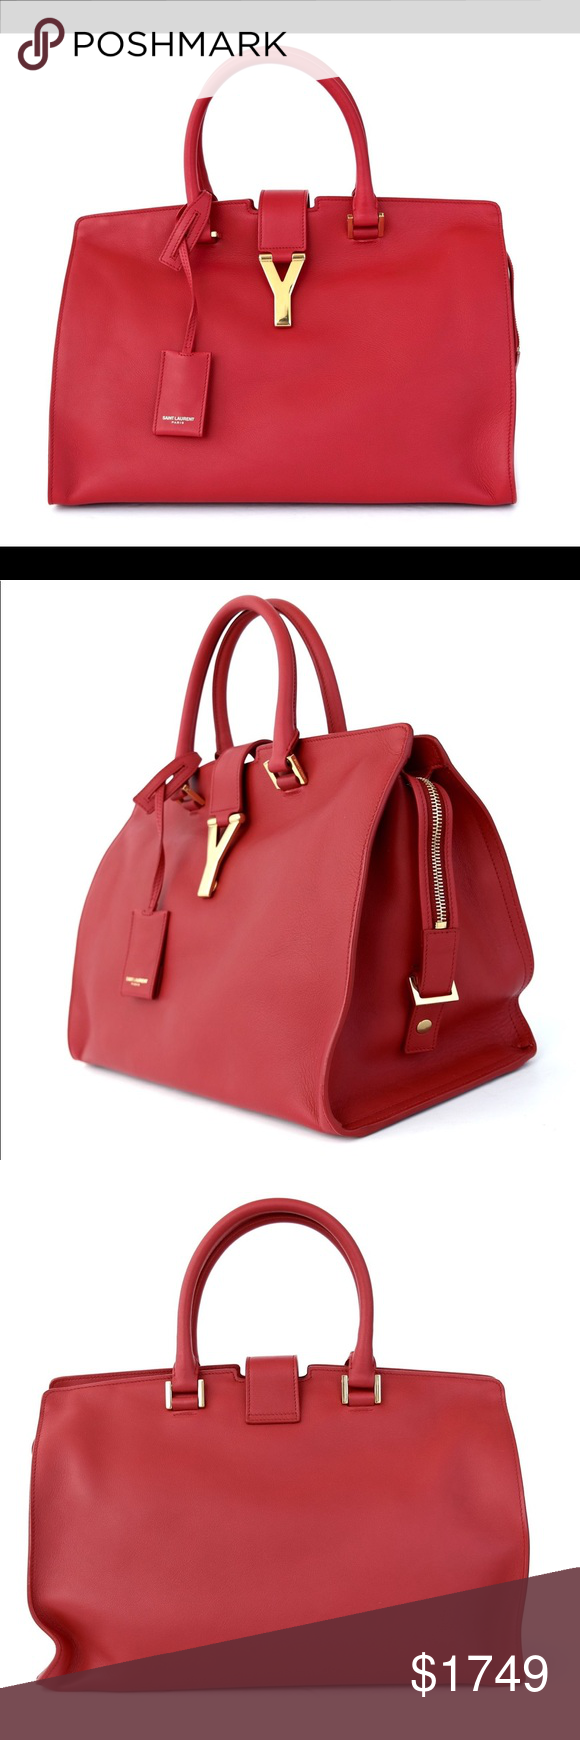 ee3da920295fb YSL Saint Laurent Cabas Y Ligne Satchel Bag New New with tags and dust bag.  Style number 311210. Measurements  7.5